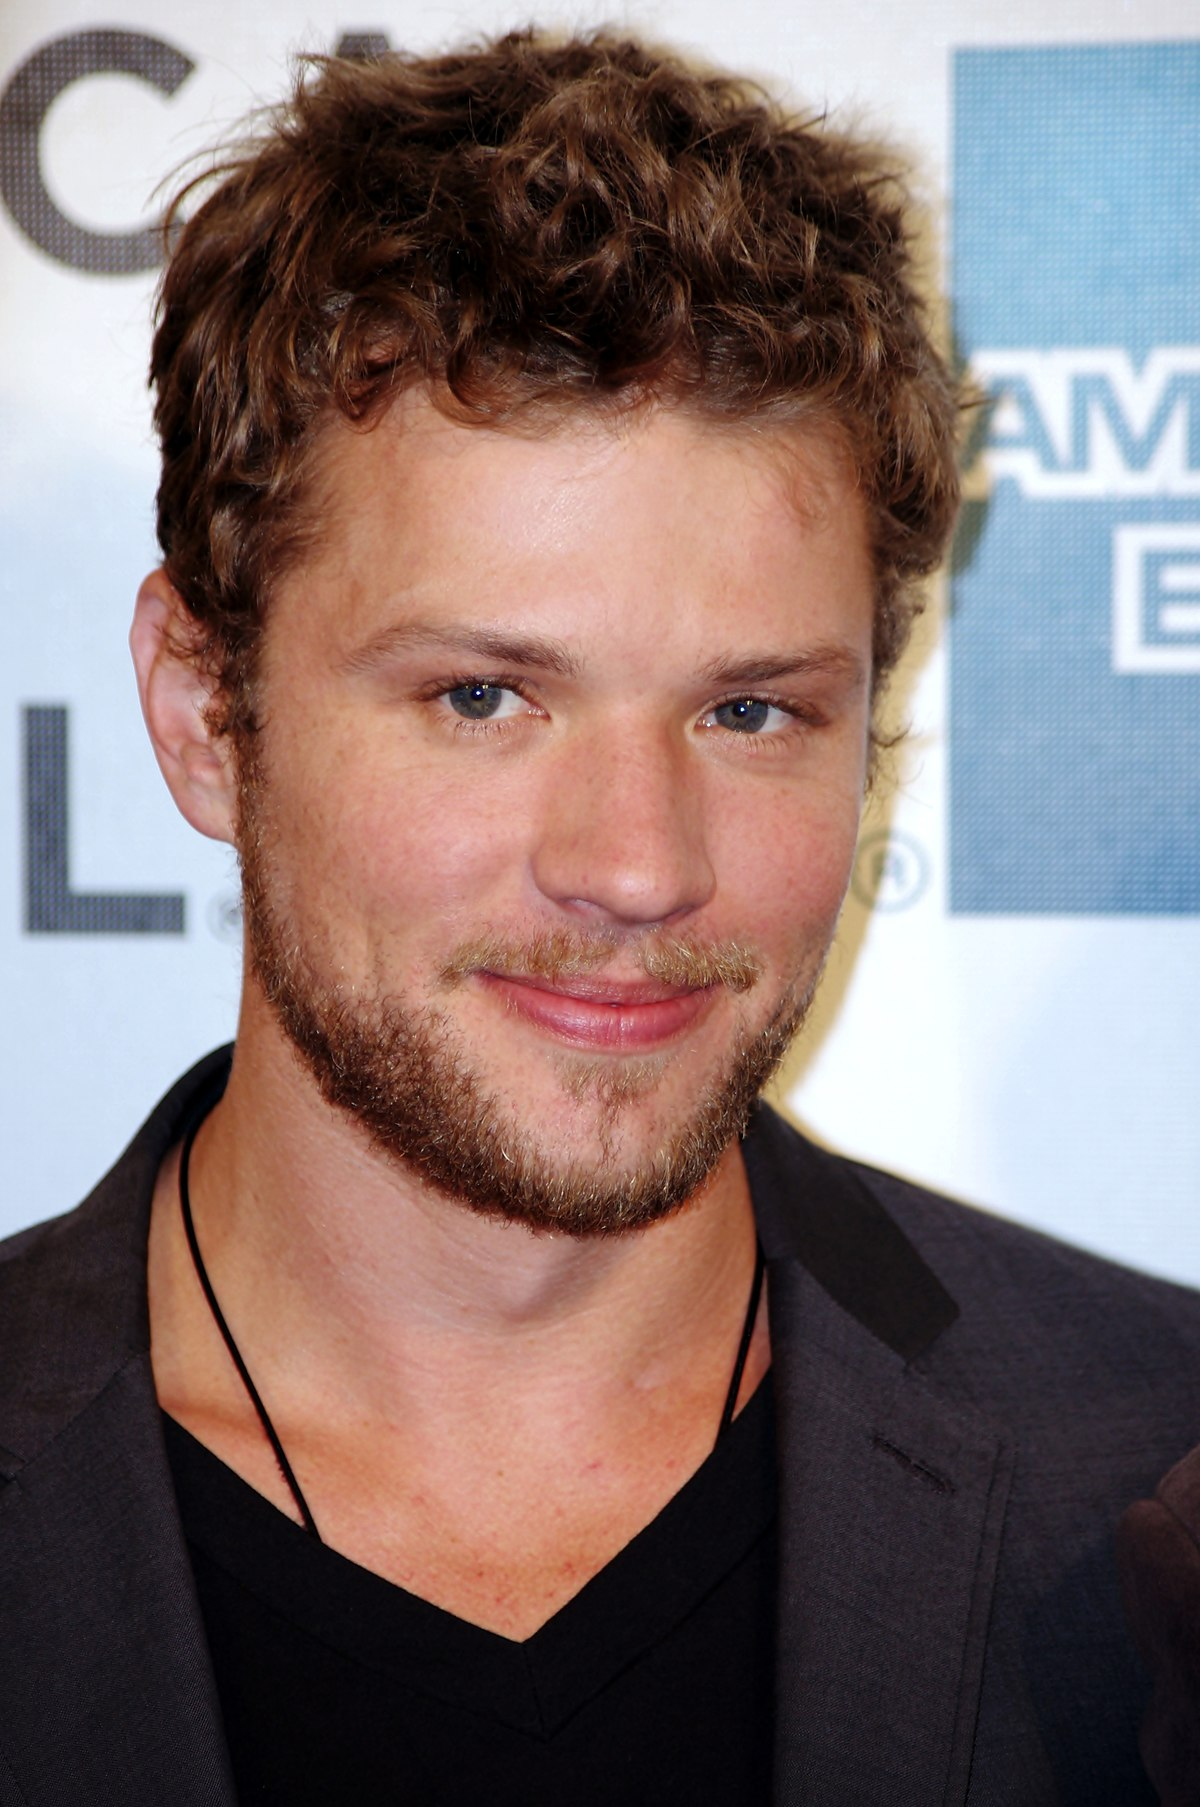 Ryan Phillippe – Wikipedia Ryan Phillippe